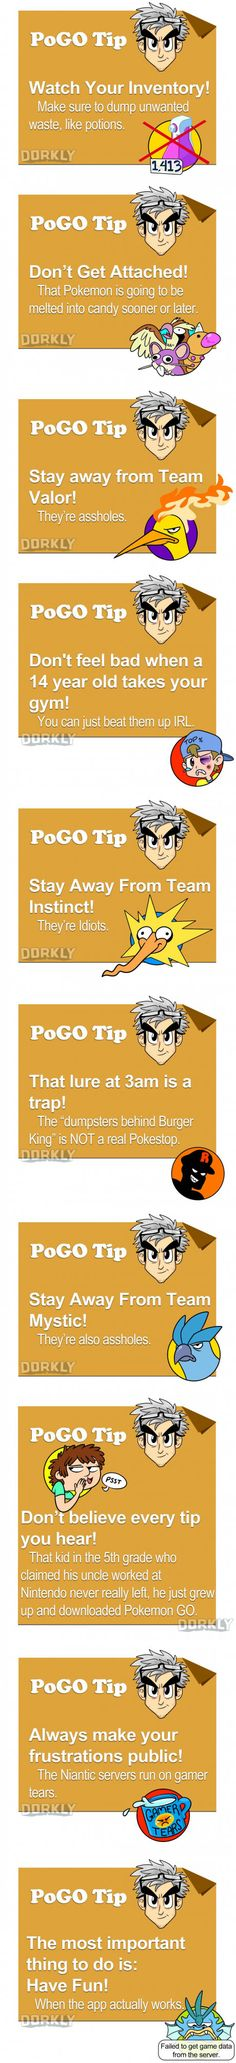 10 Hot Pokemon GO Tips For Everyone To Catch 'em All!